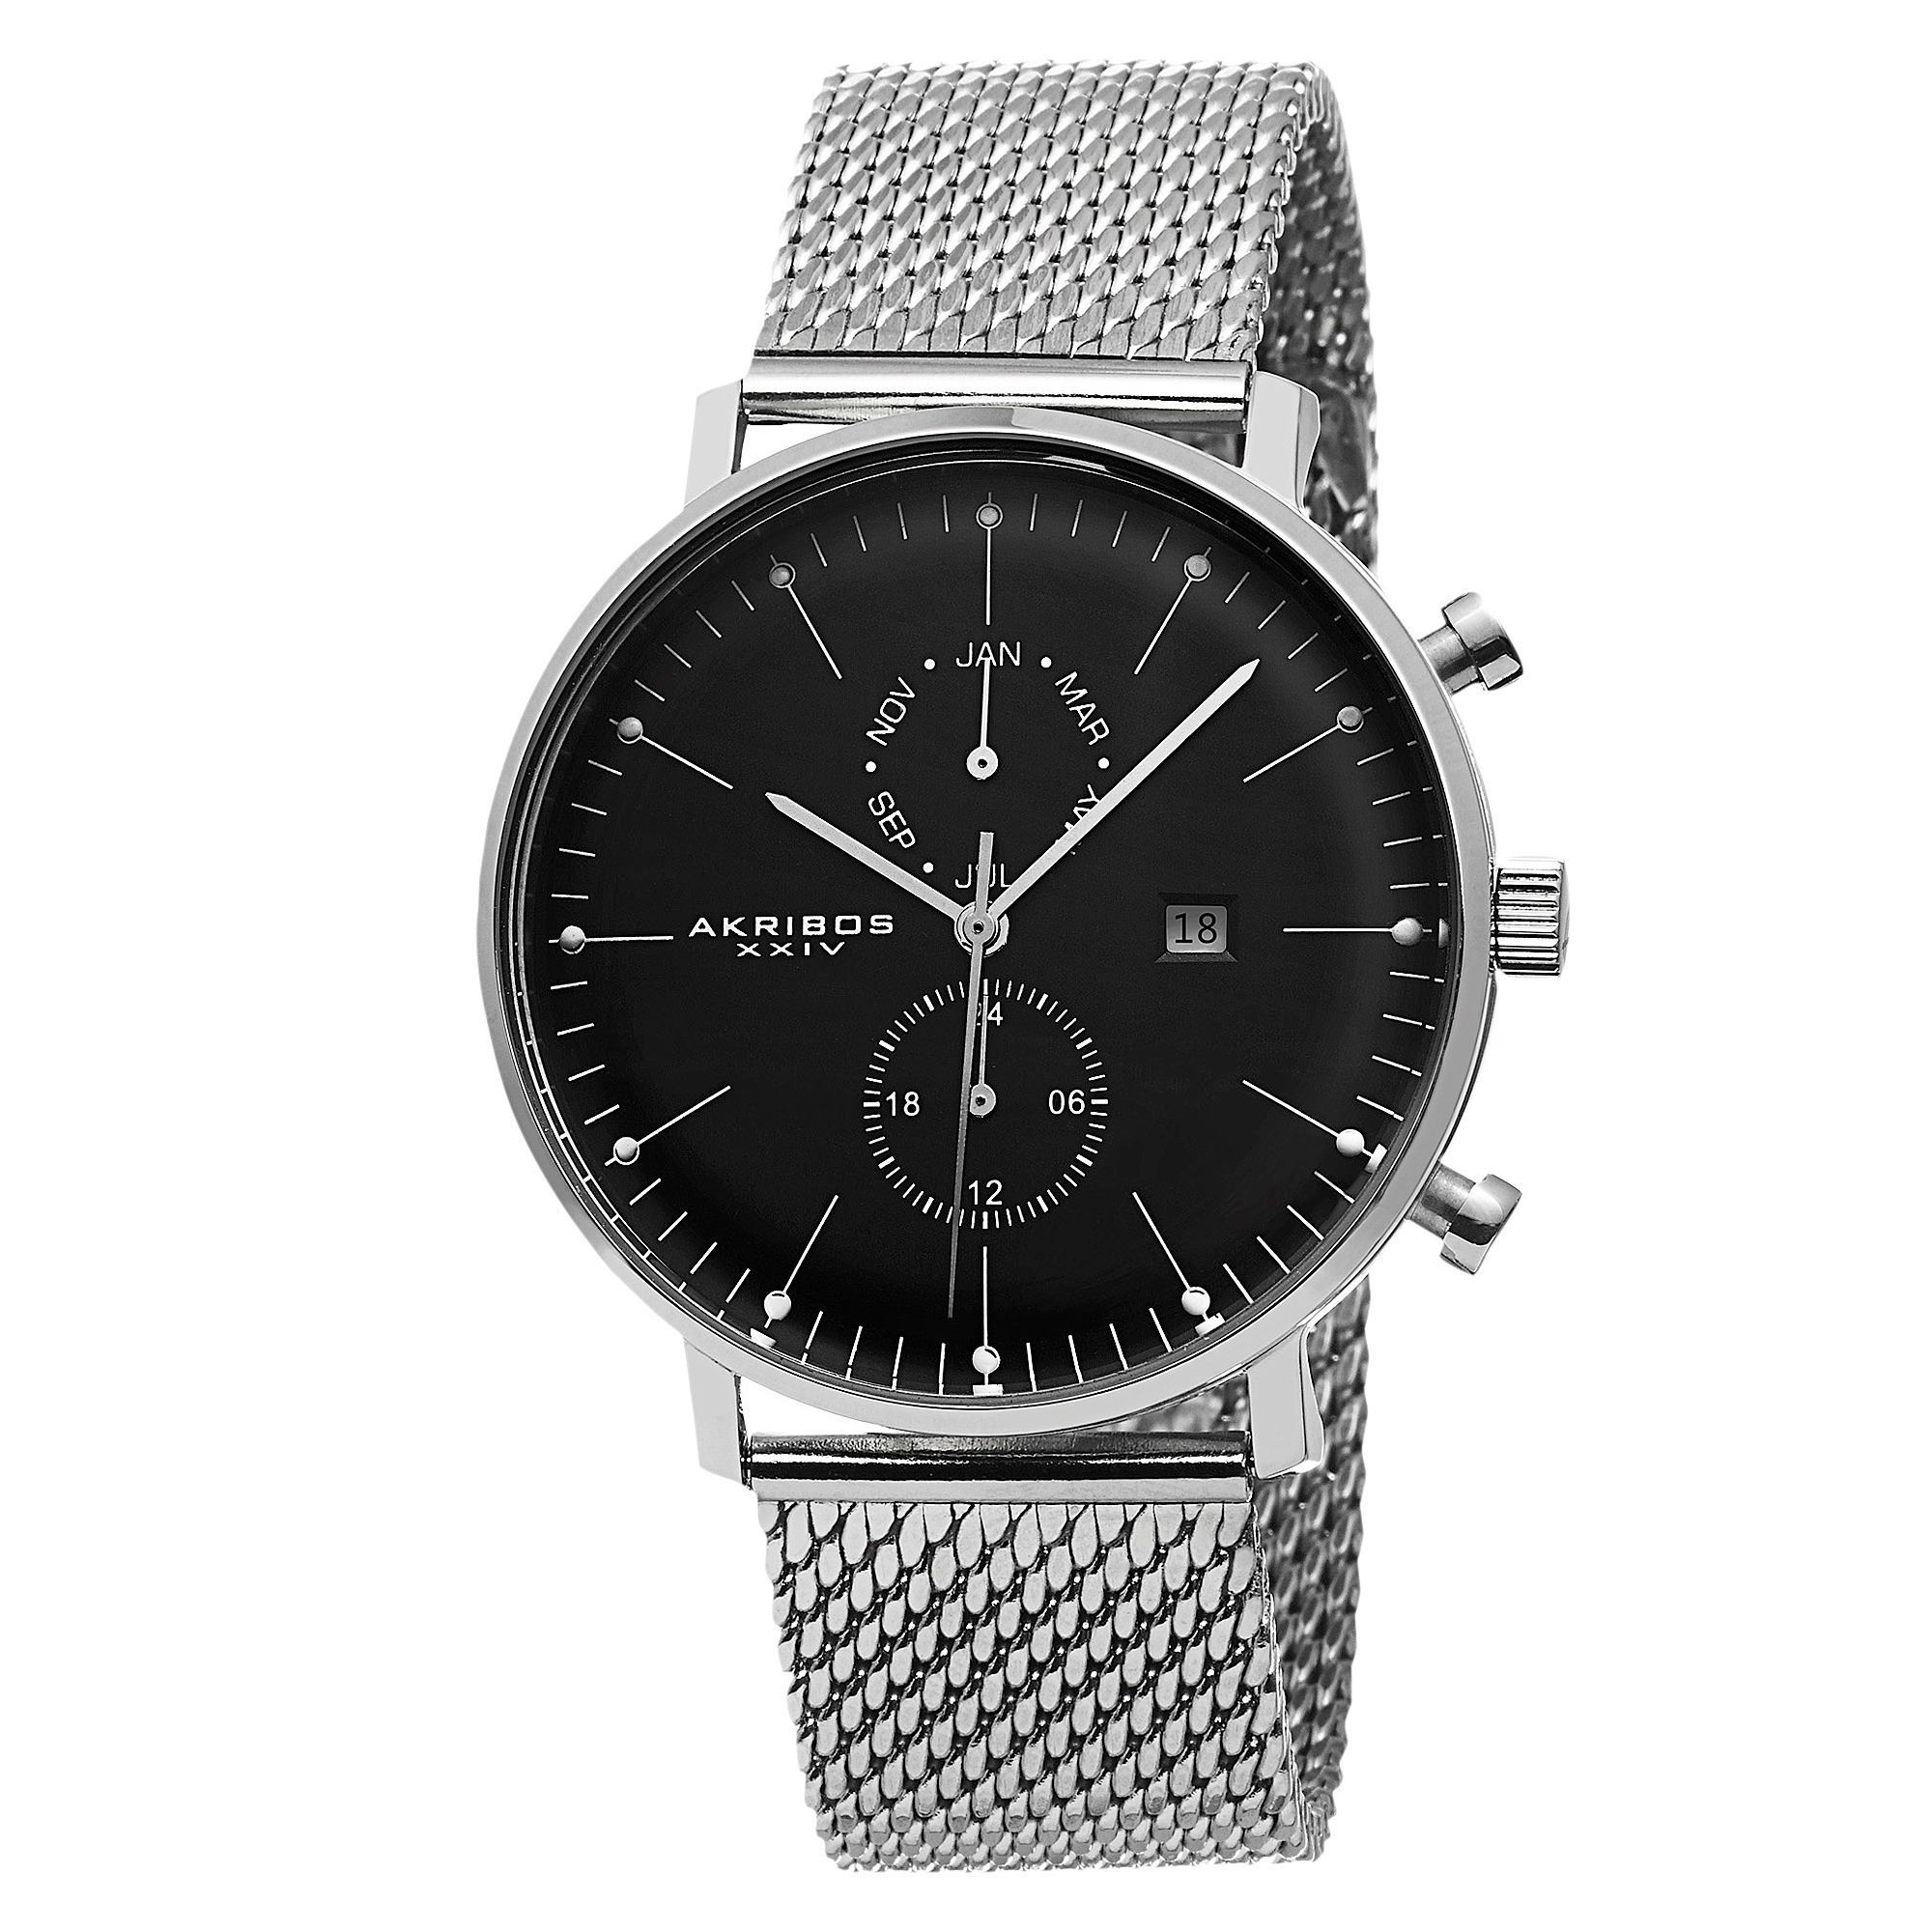 This Akribos XXIV men's watch is an elegant piece. The matte dial features the date, month and dual time. Clean markers and mesh bracelet create a classic look. The stainless steel build and Swiss quartz movement makes this a sturdy timepiece.